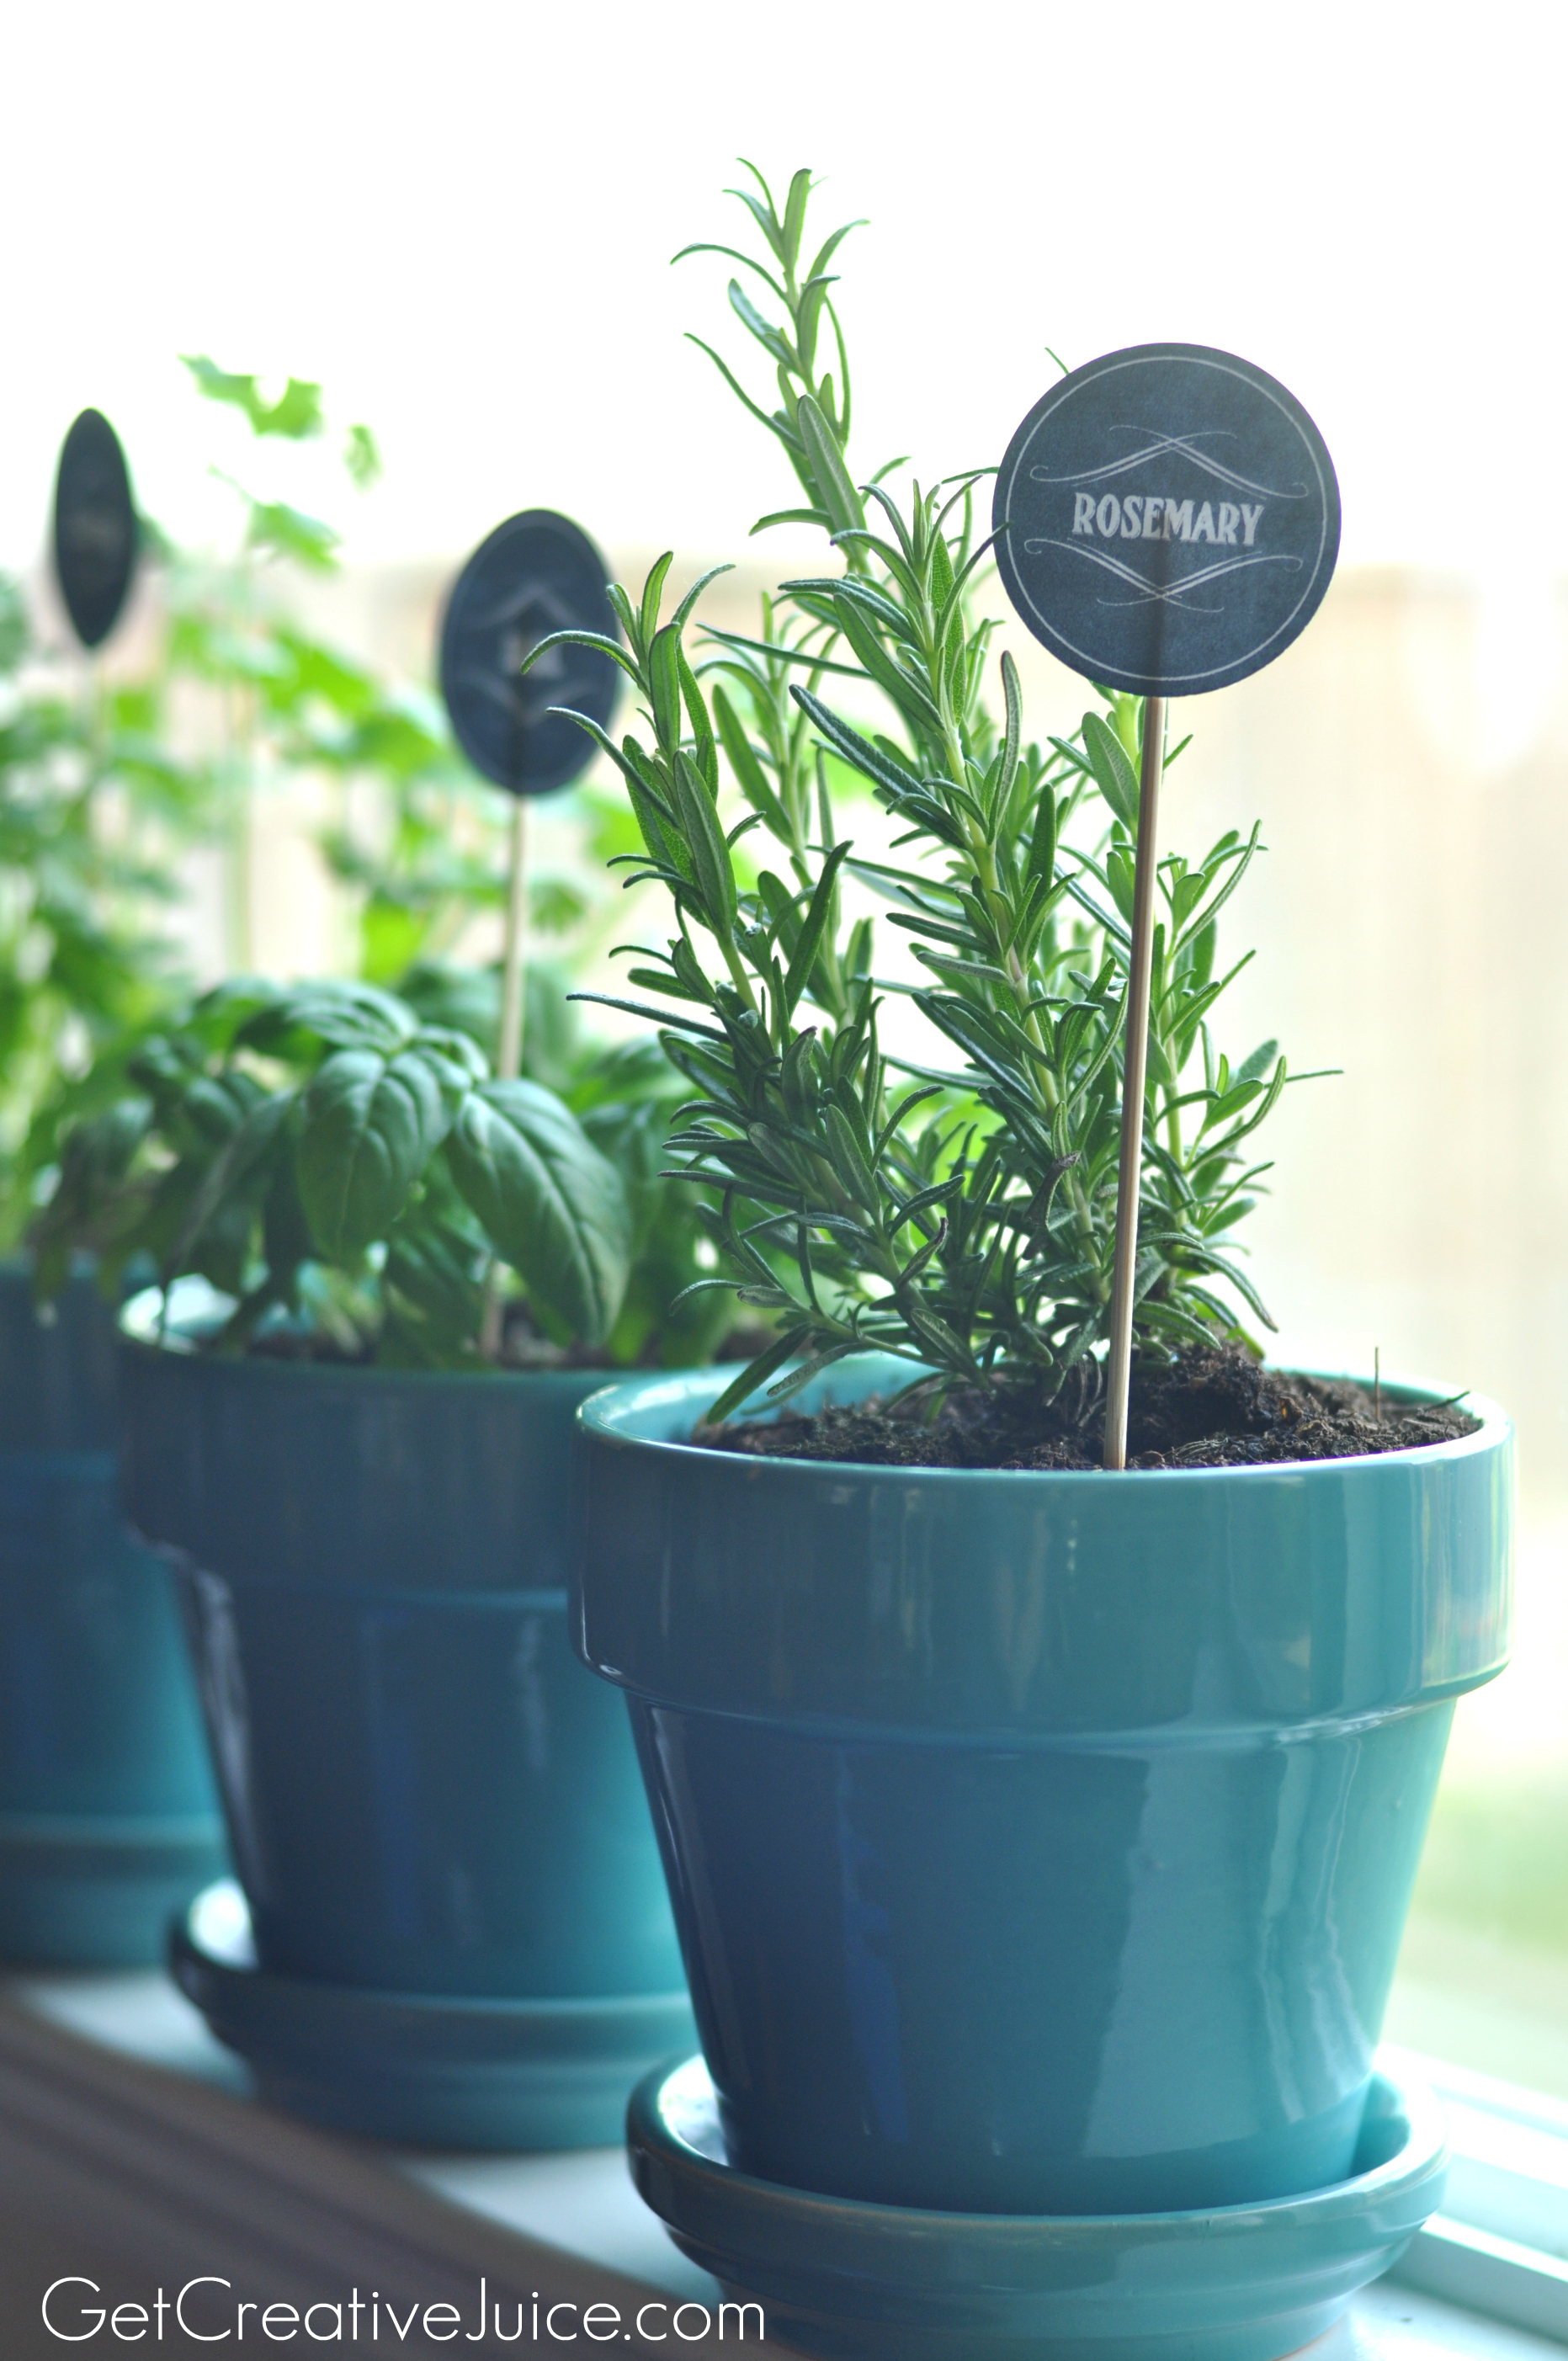 Best Pots For Indoor Herbs Diy Potted Herb Garden Save Money On Fresh Herbs The